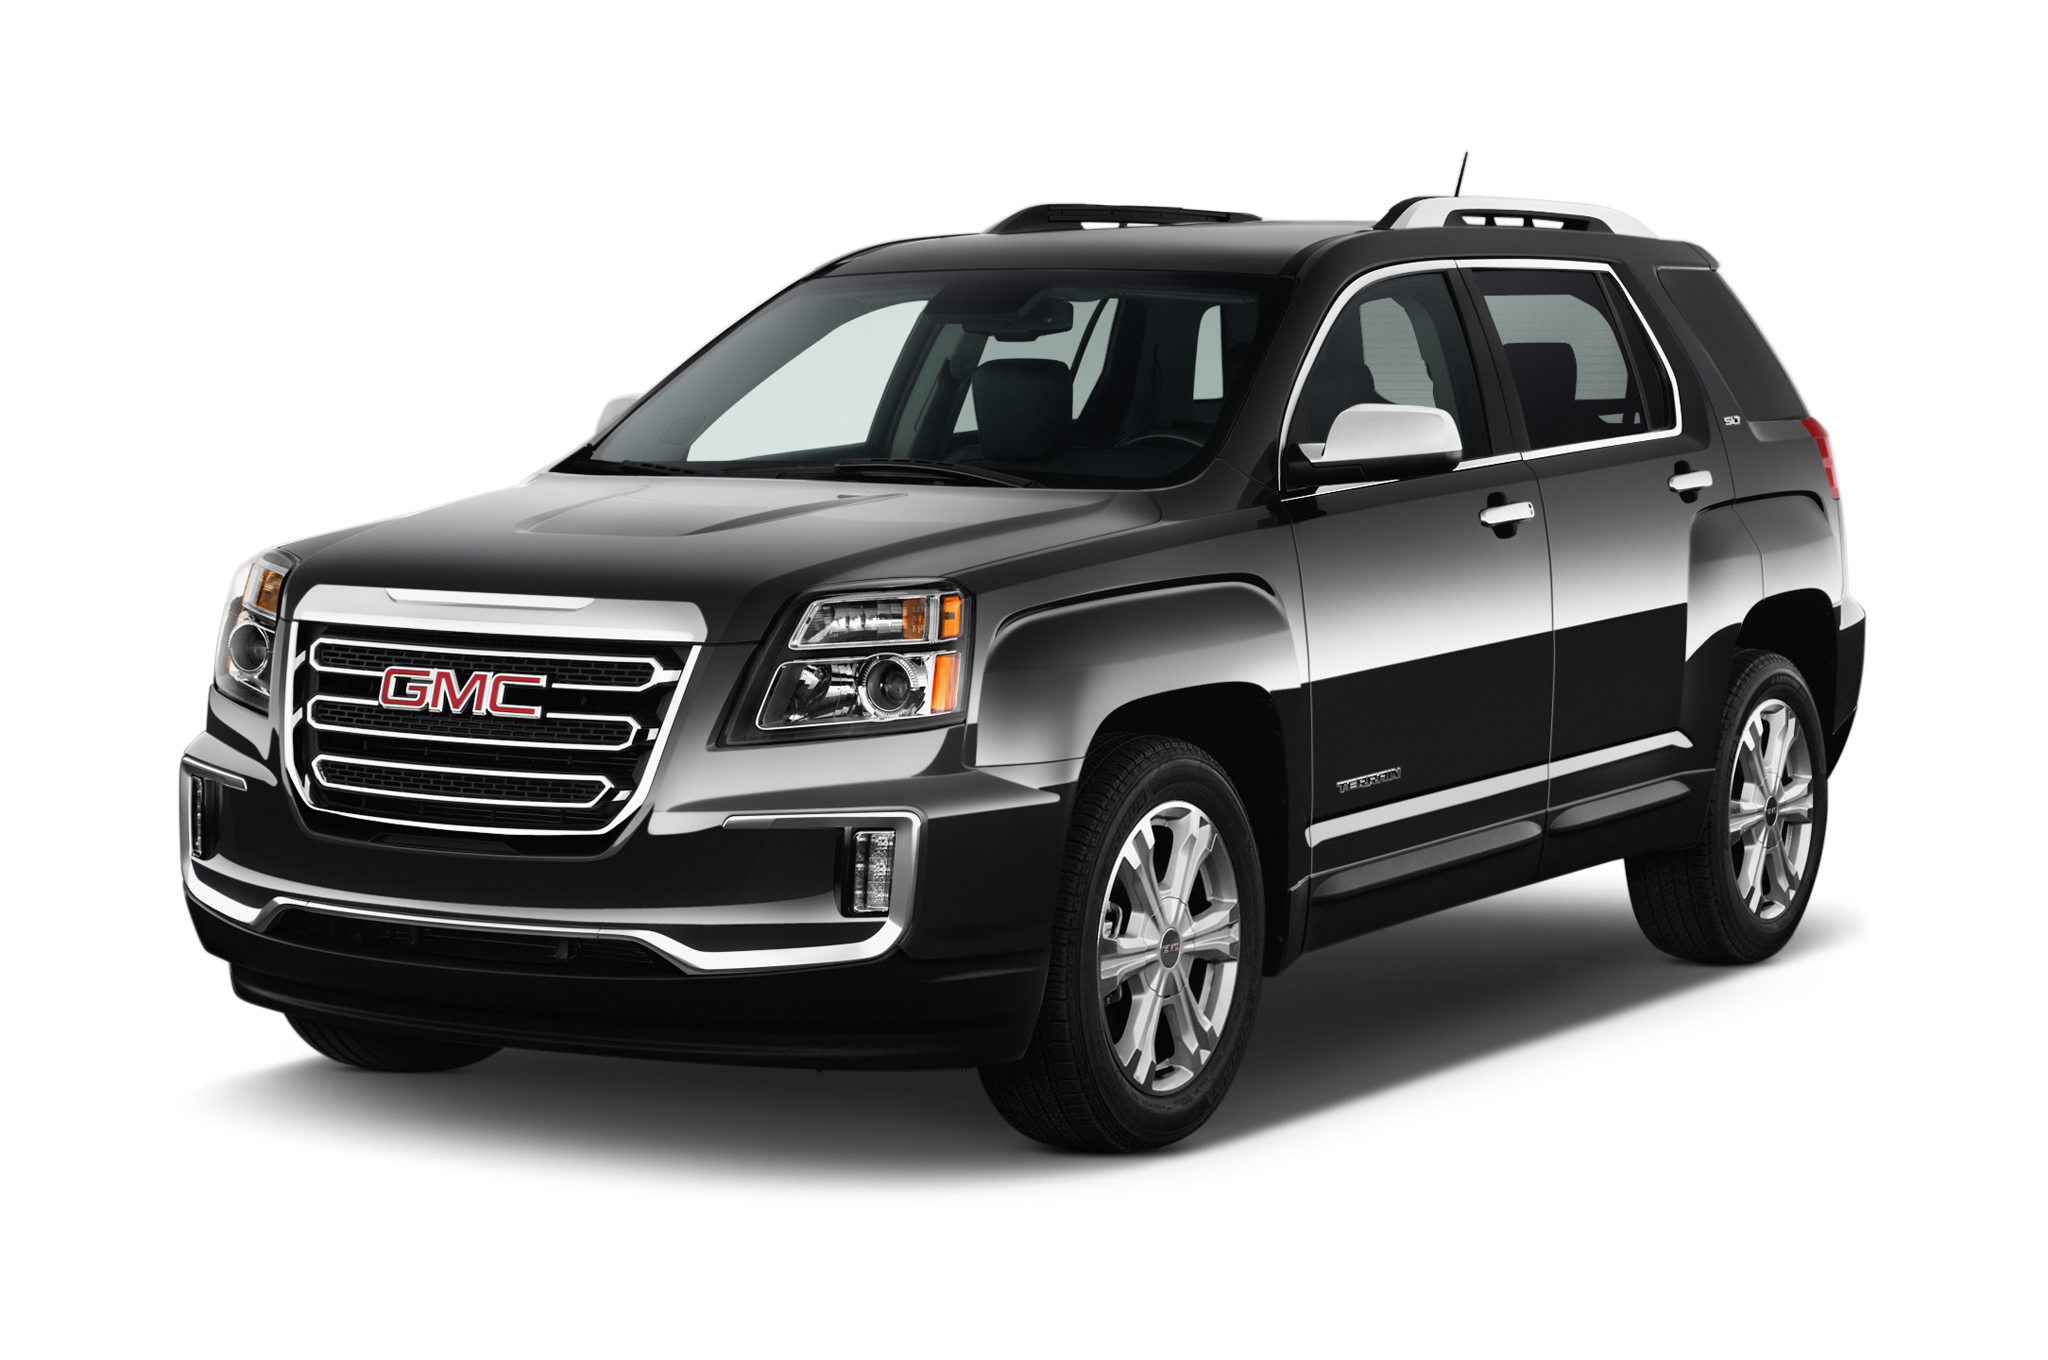 2017 gmc terrain adds blacked out nightfall edition automobile magazine